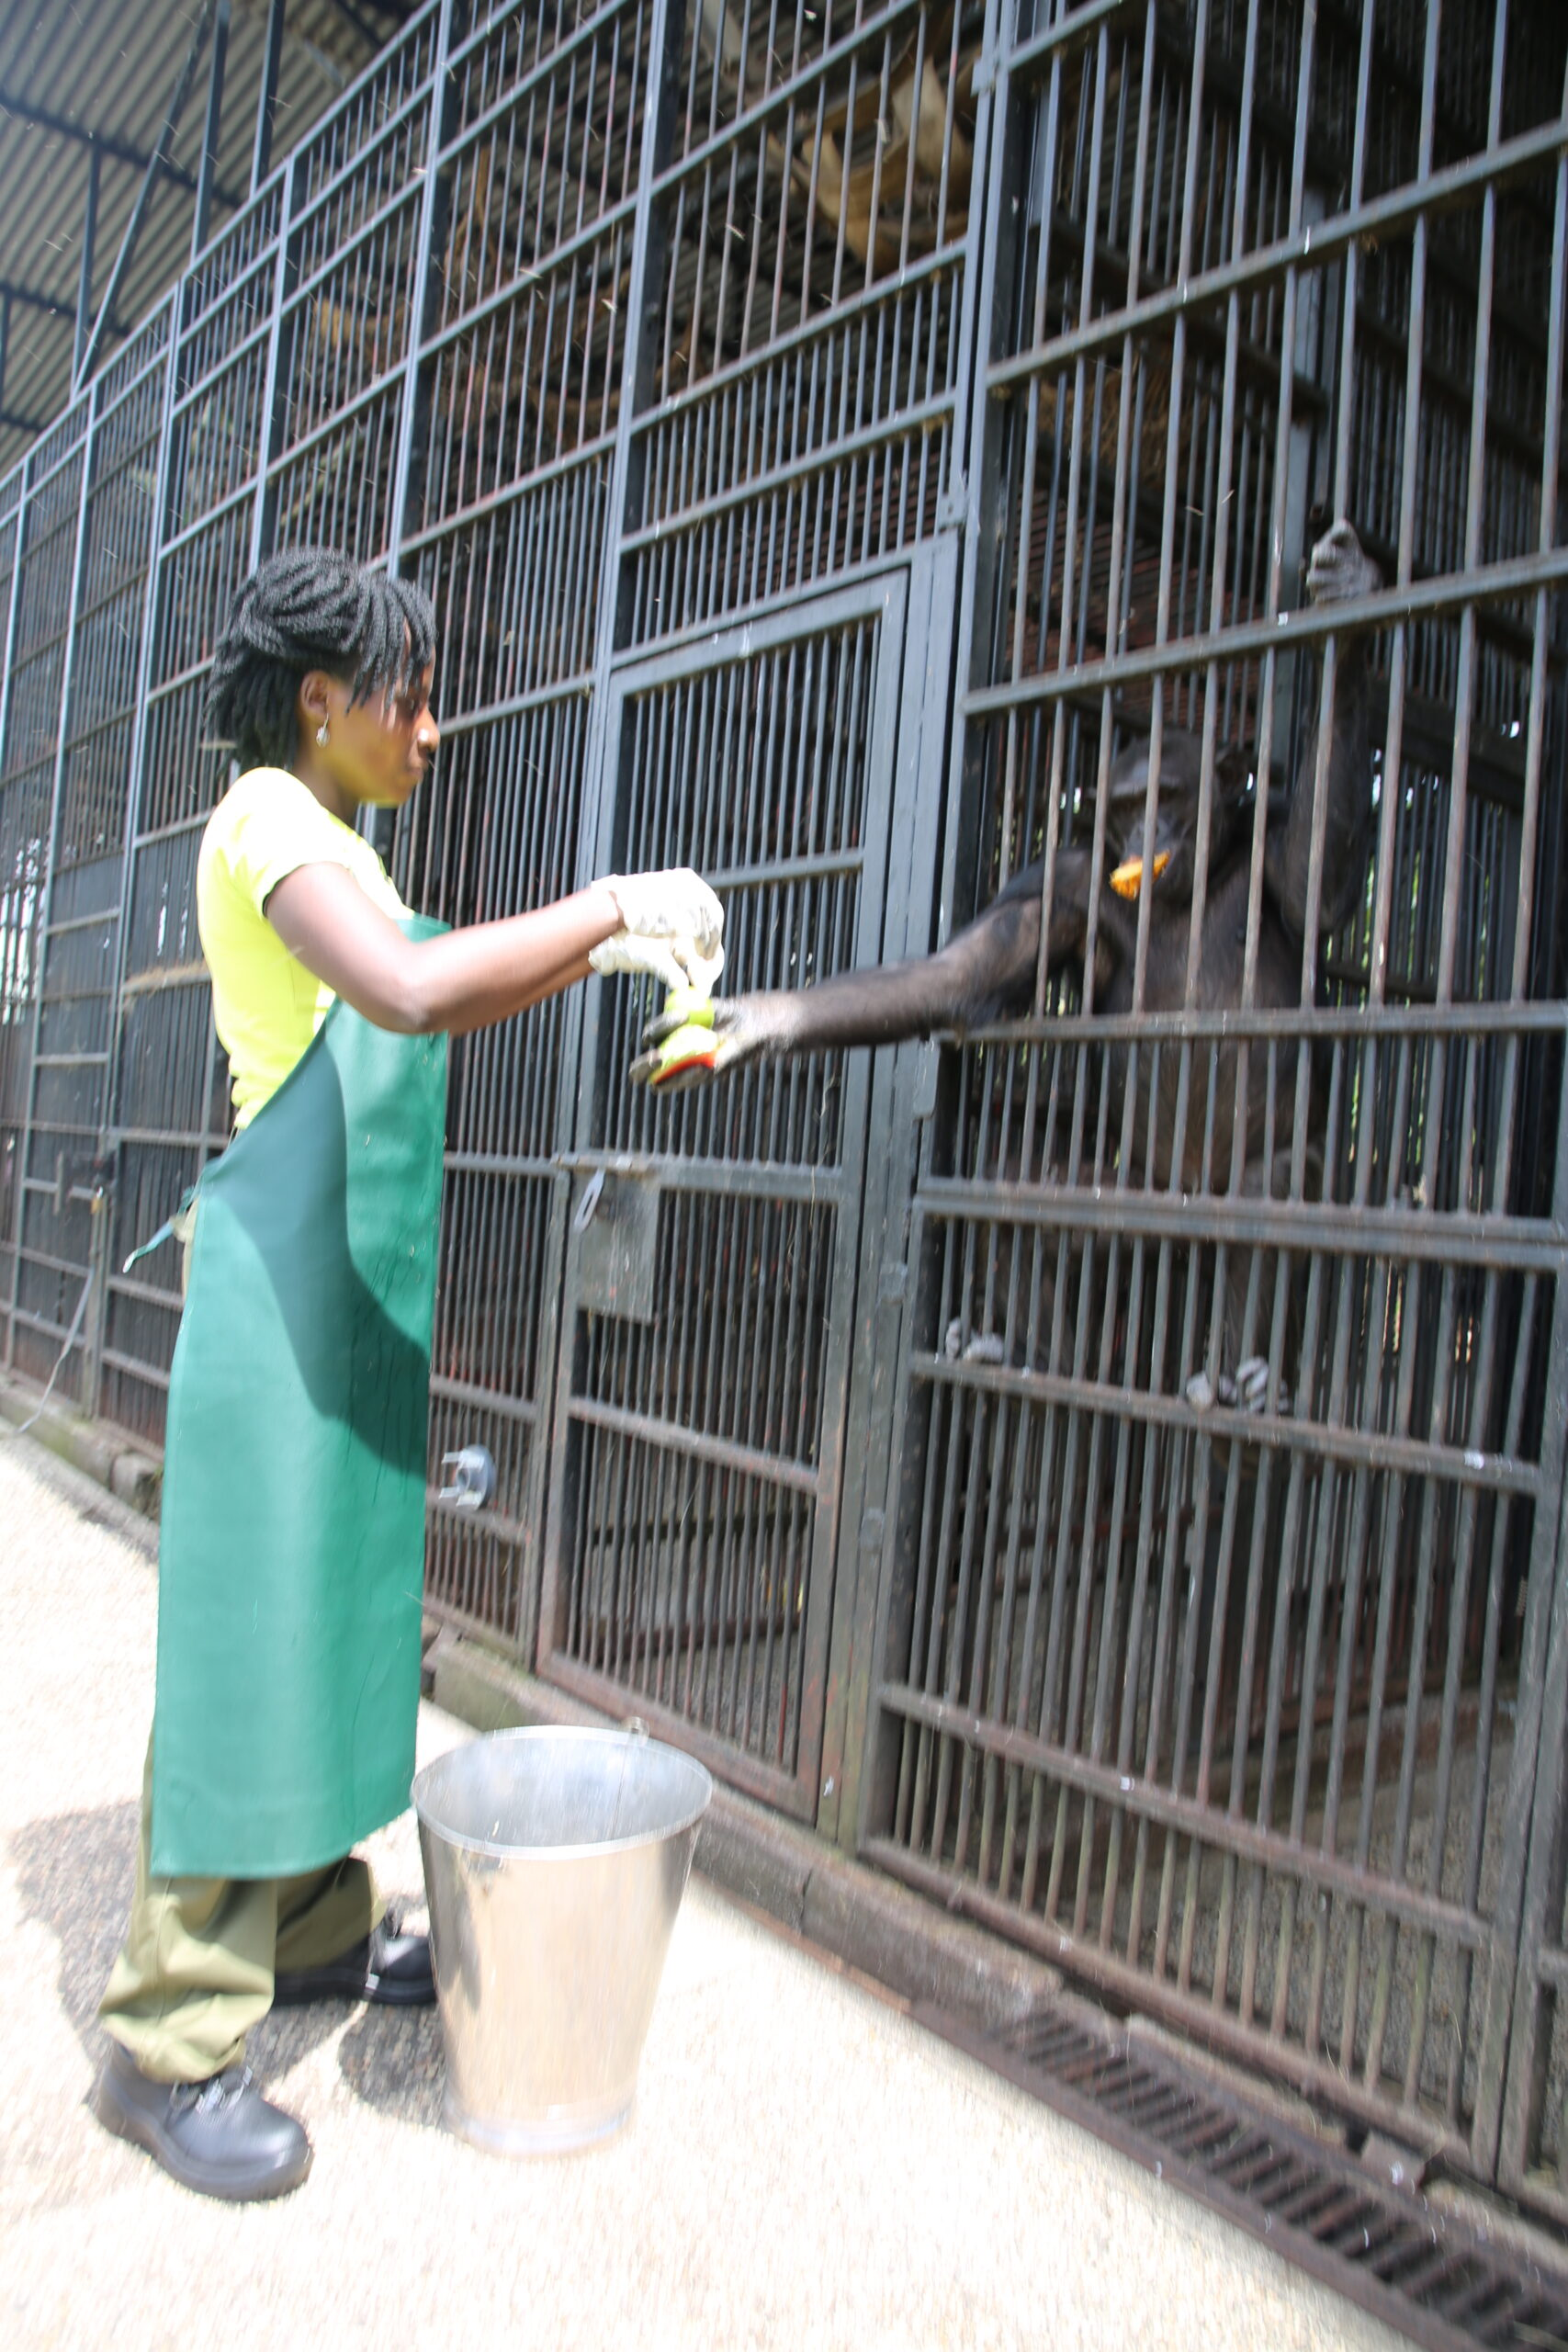 A woman feeds a chimpanzee at a wildlife sanctuary in Africa.